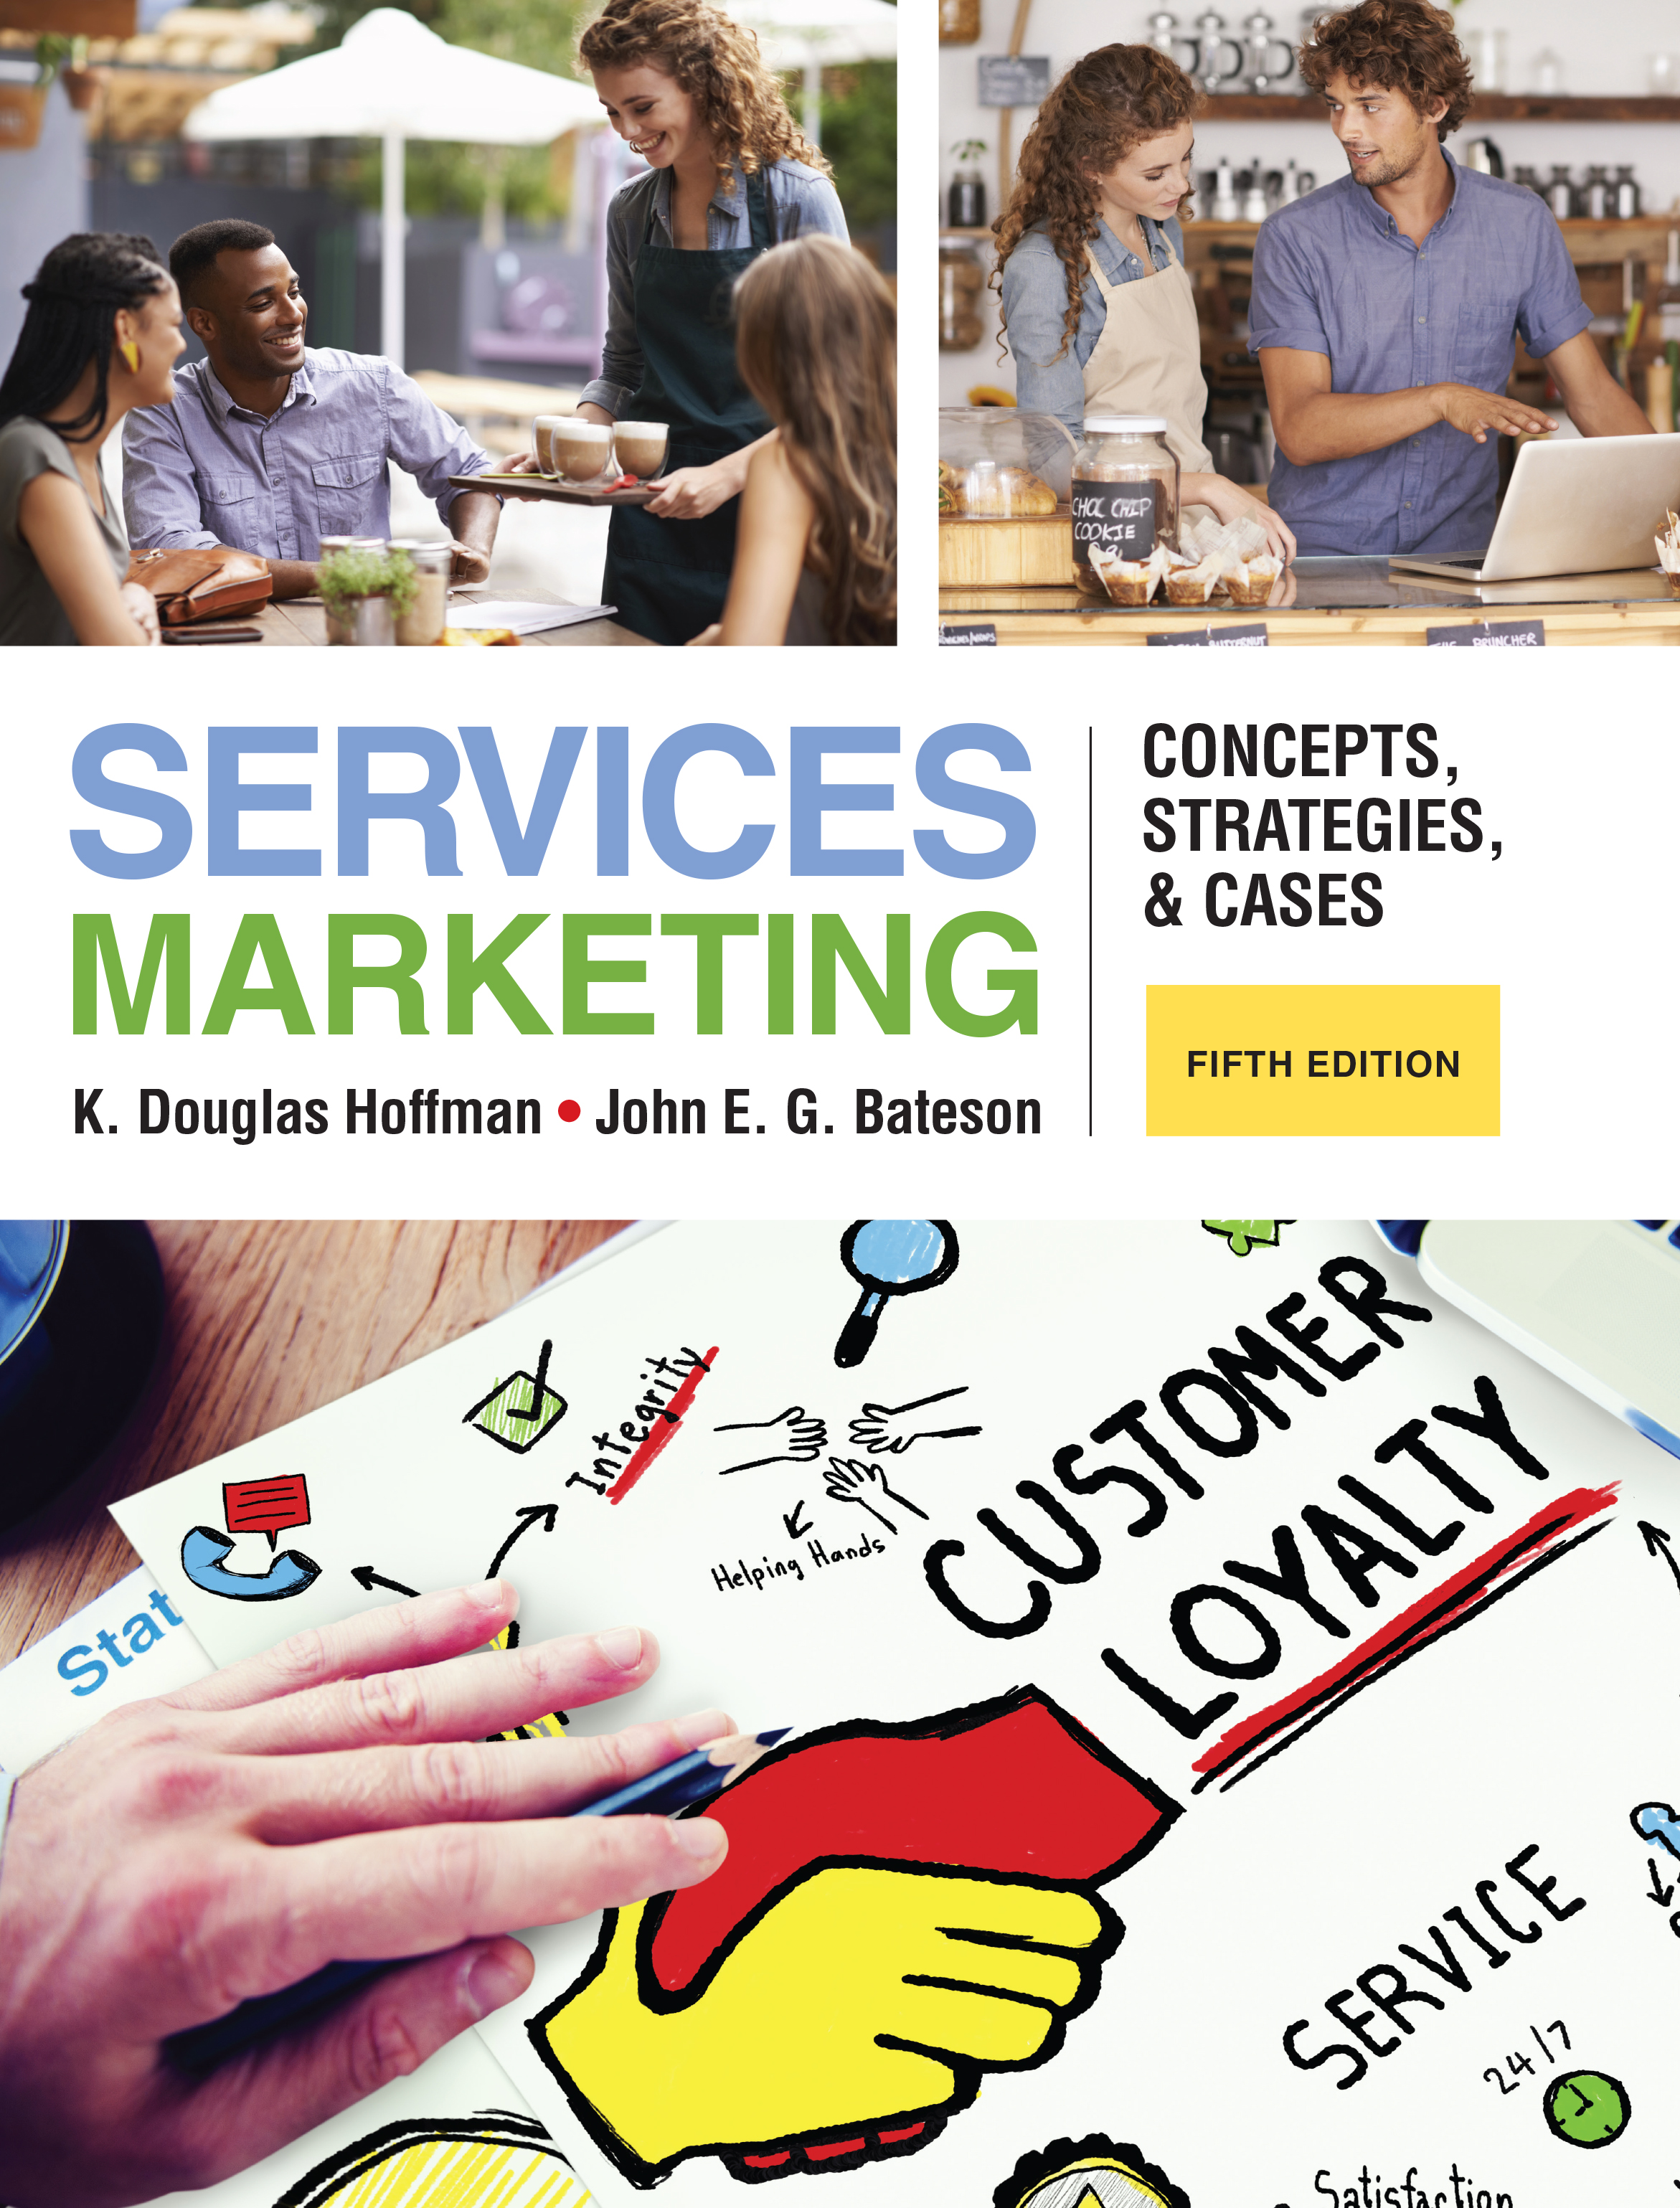 services marketing concepts Buy services marketing: concepts, strategies, & cases 5 by k hoffman, john bateson (isbn: 9781285429786) from amazon's book store everyday low prices and free delivery on eligible orders.